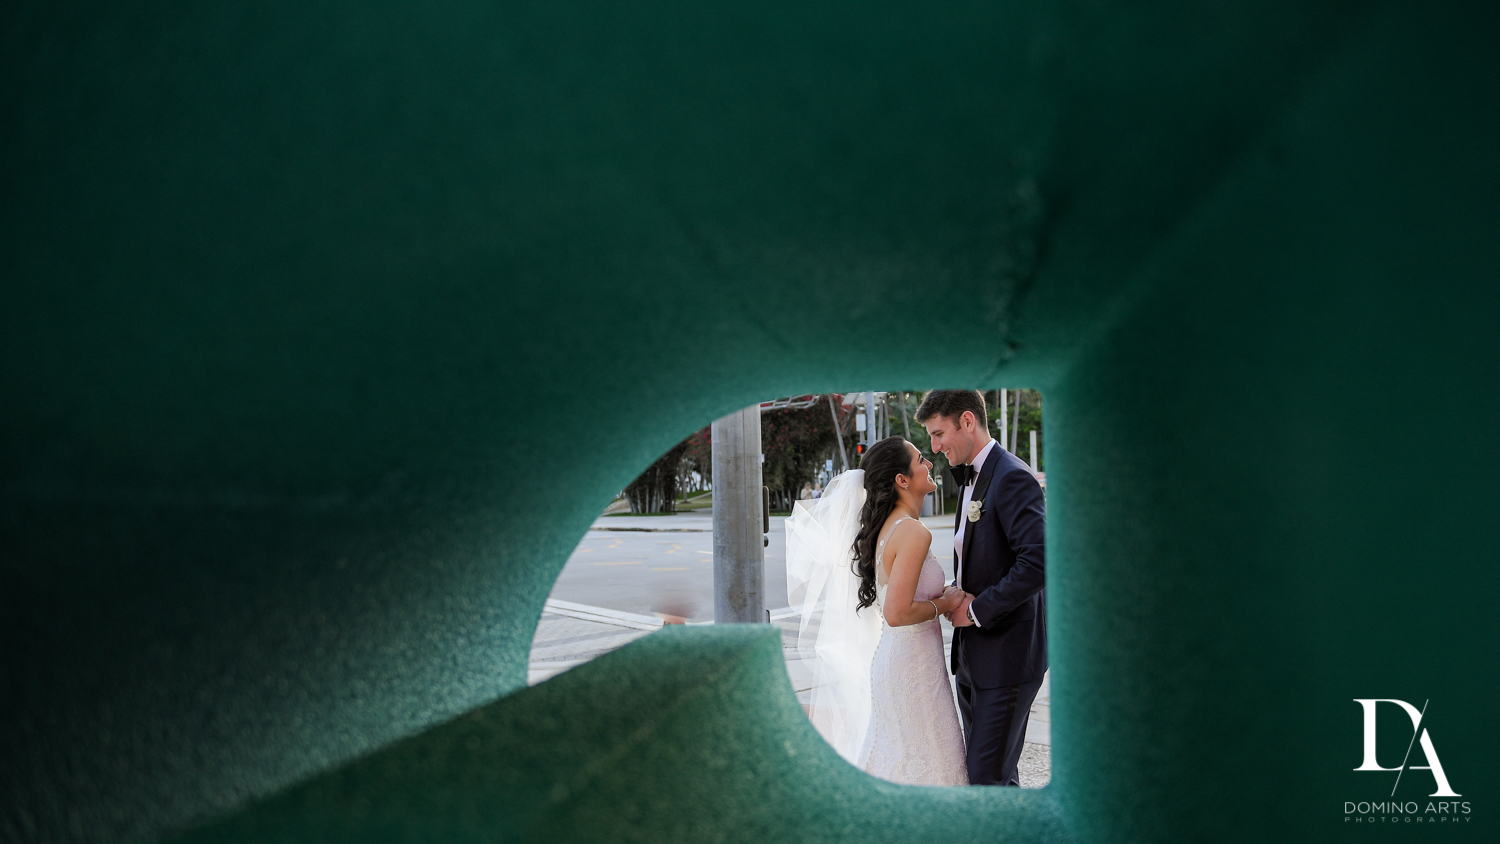 creative pictures at Classic Miami Beach Wedding at Temple Emanu-El and Emanuel Luxury Venue by Domino Arts Photography